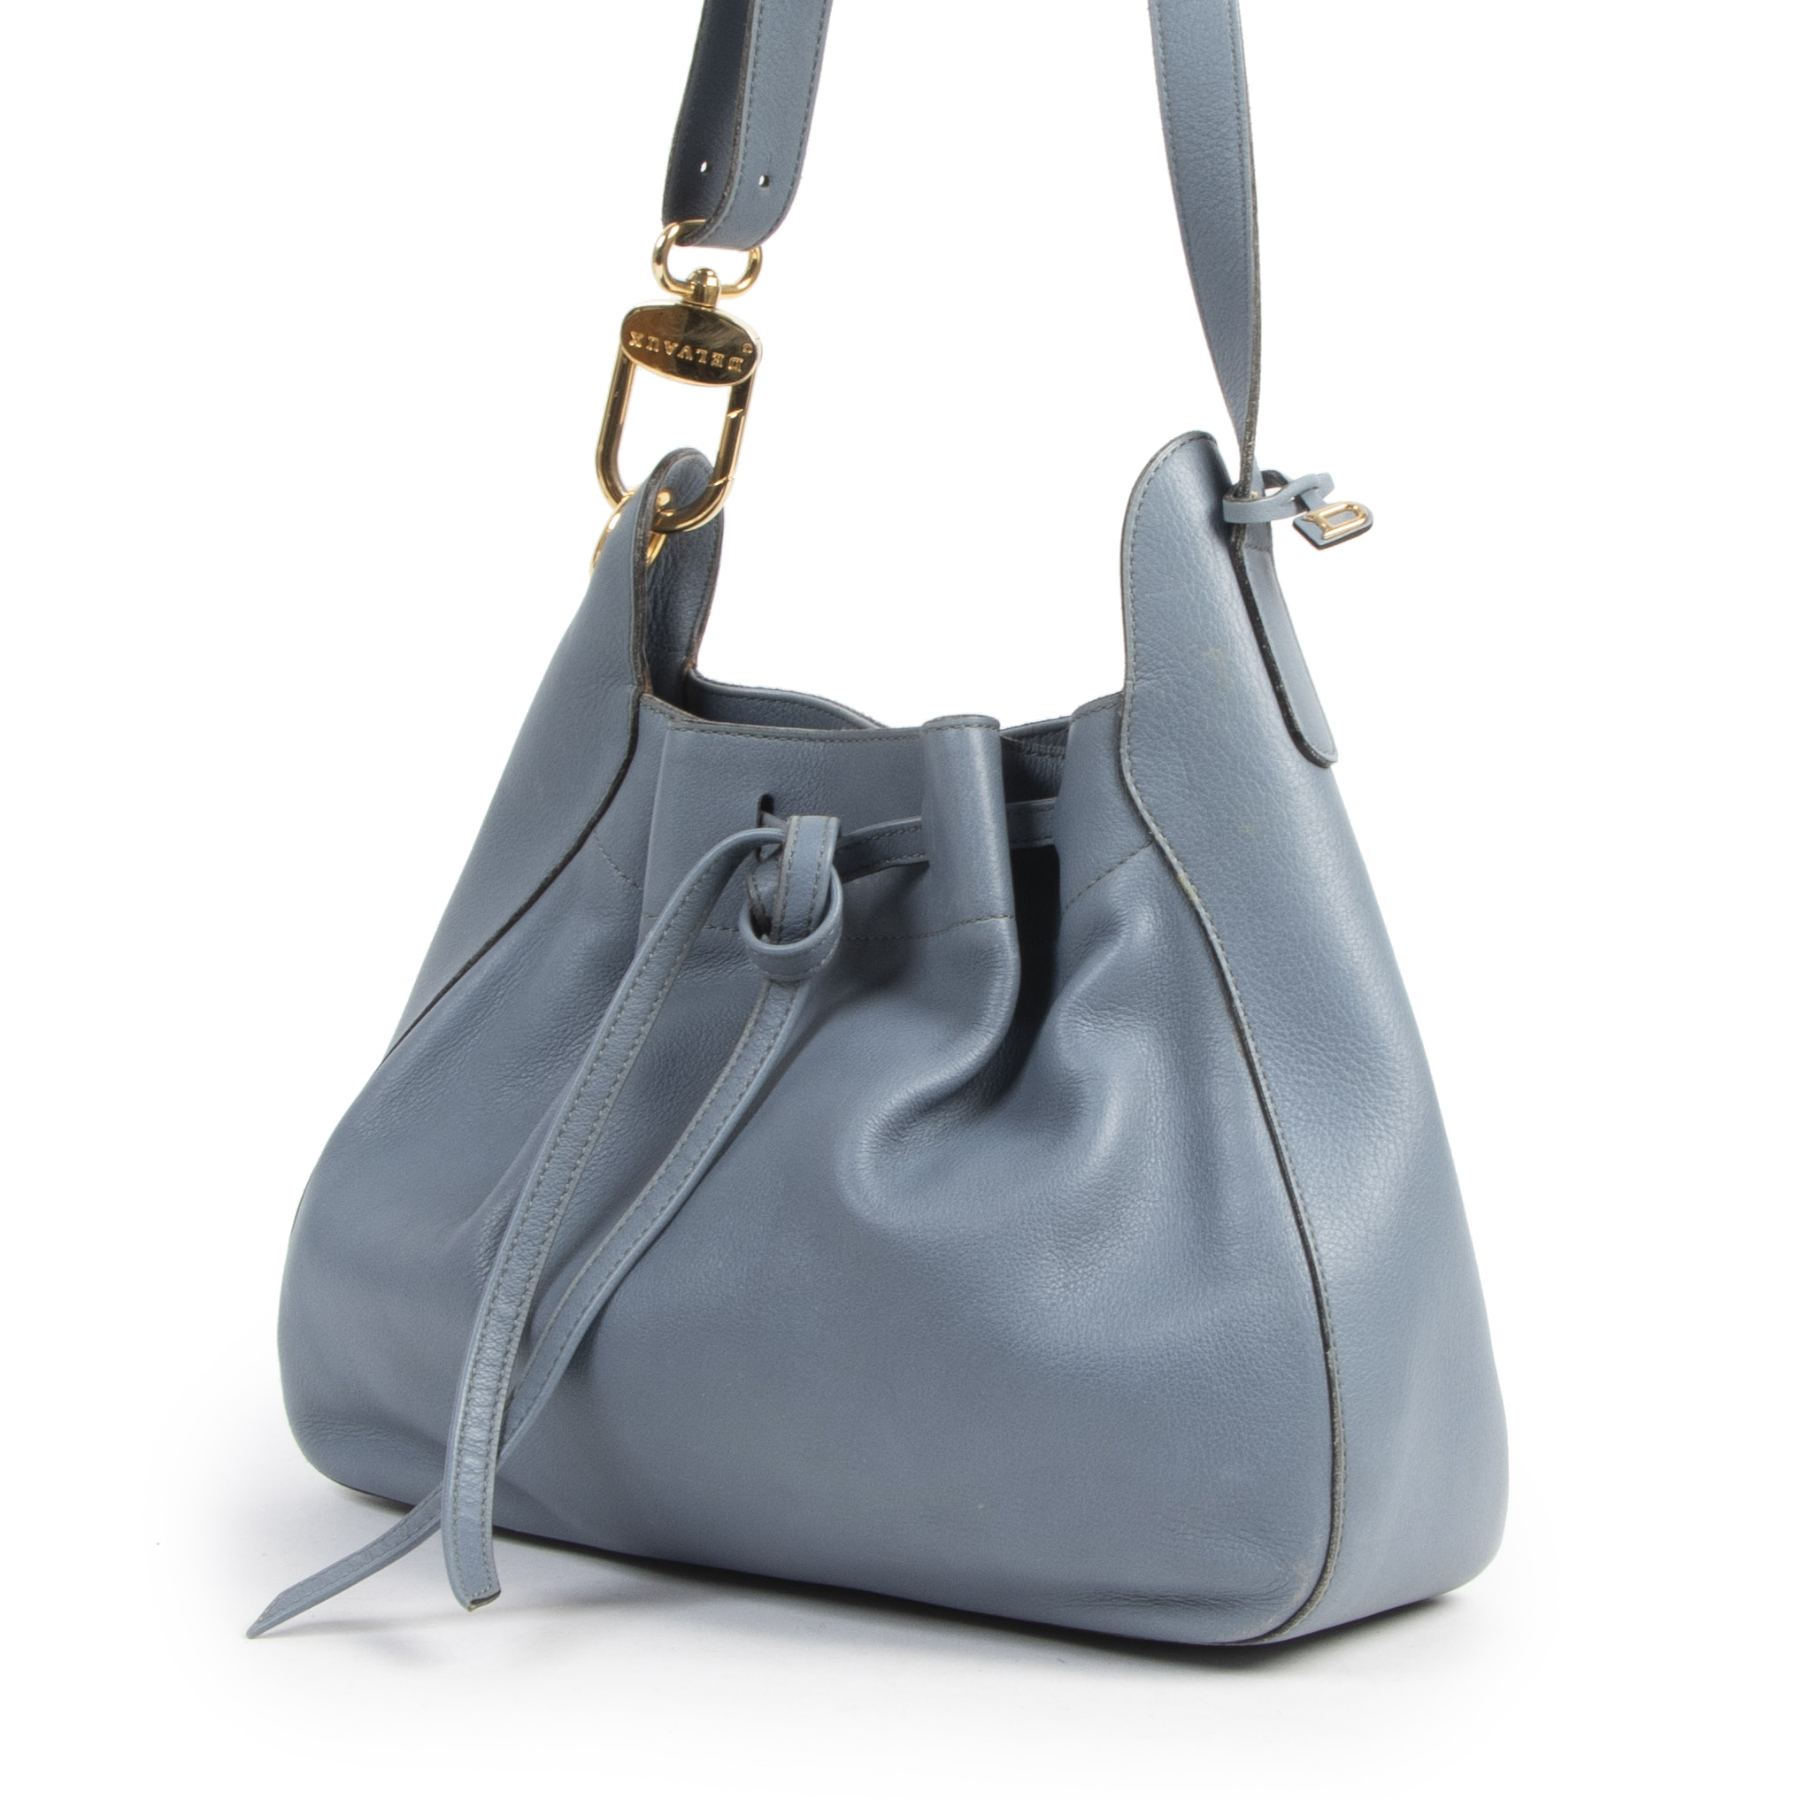 Authentique seconde-main vintage Delvaux Blue Leather Drawstring Tote achète en ligne webshop LabelLOV